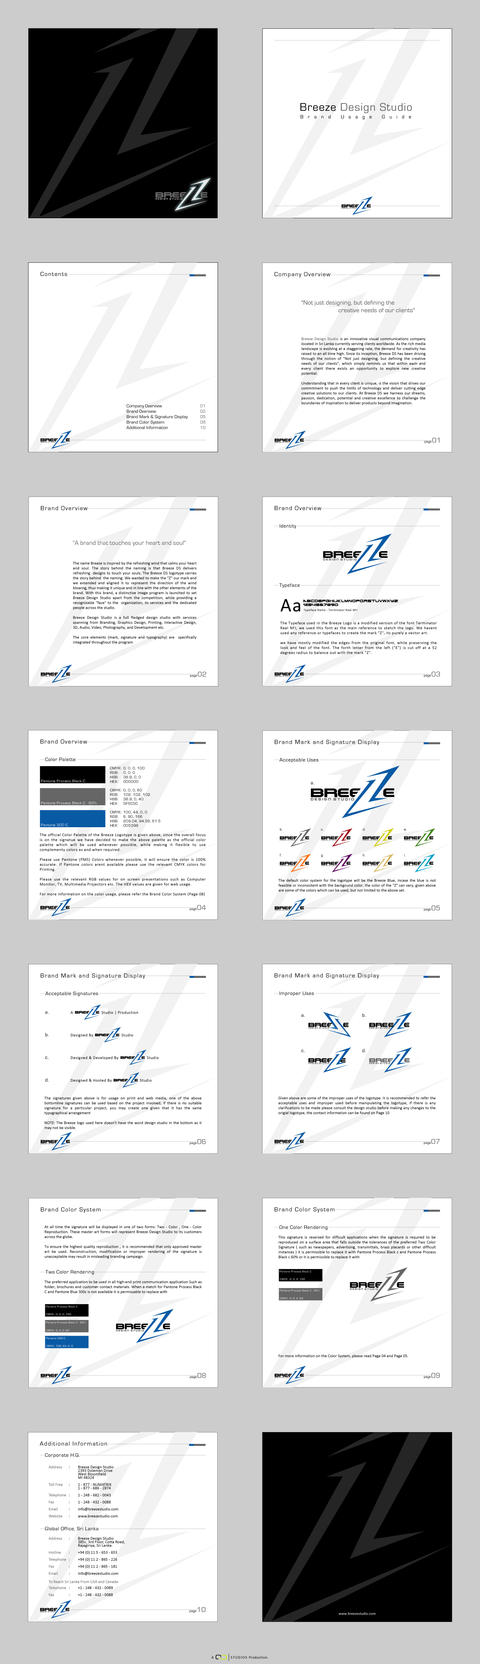 Breeze DS Brand Usage Guide by qdstudios